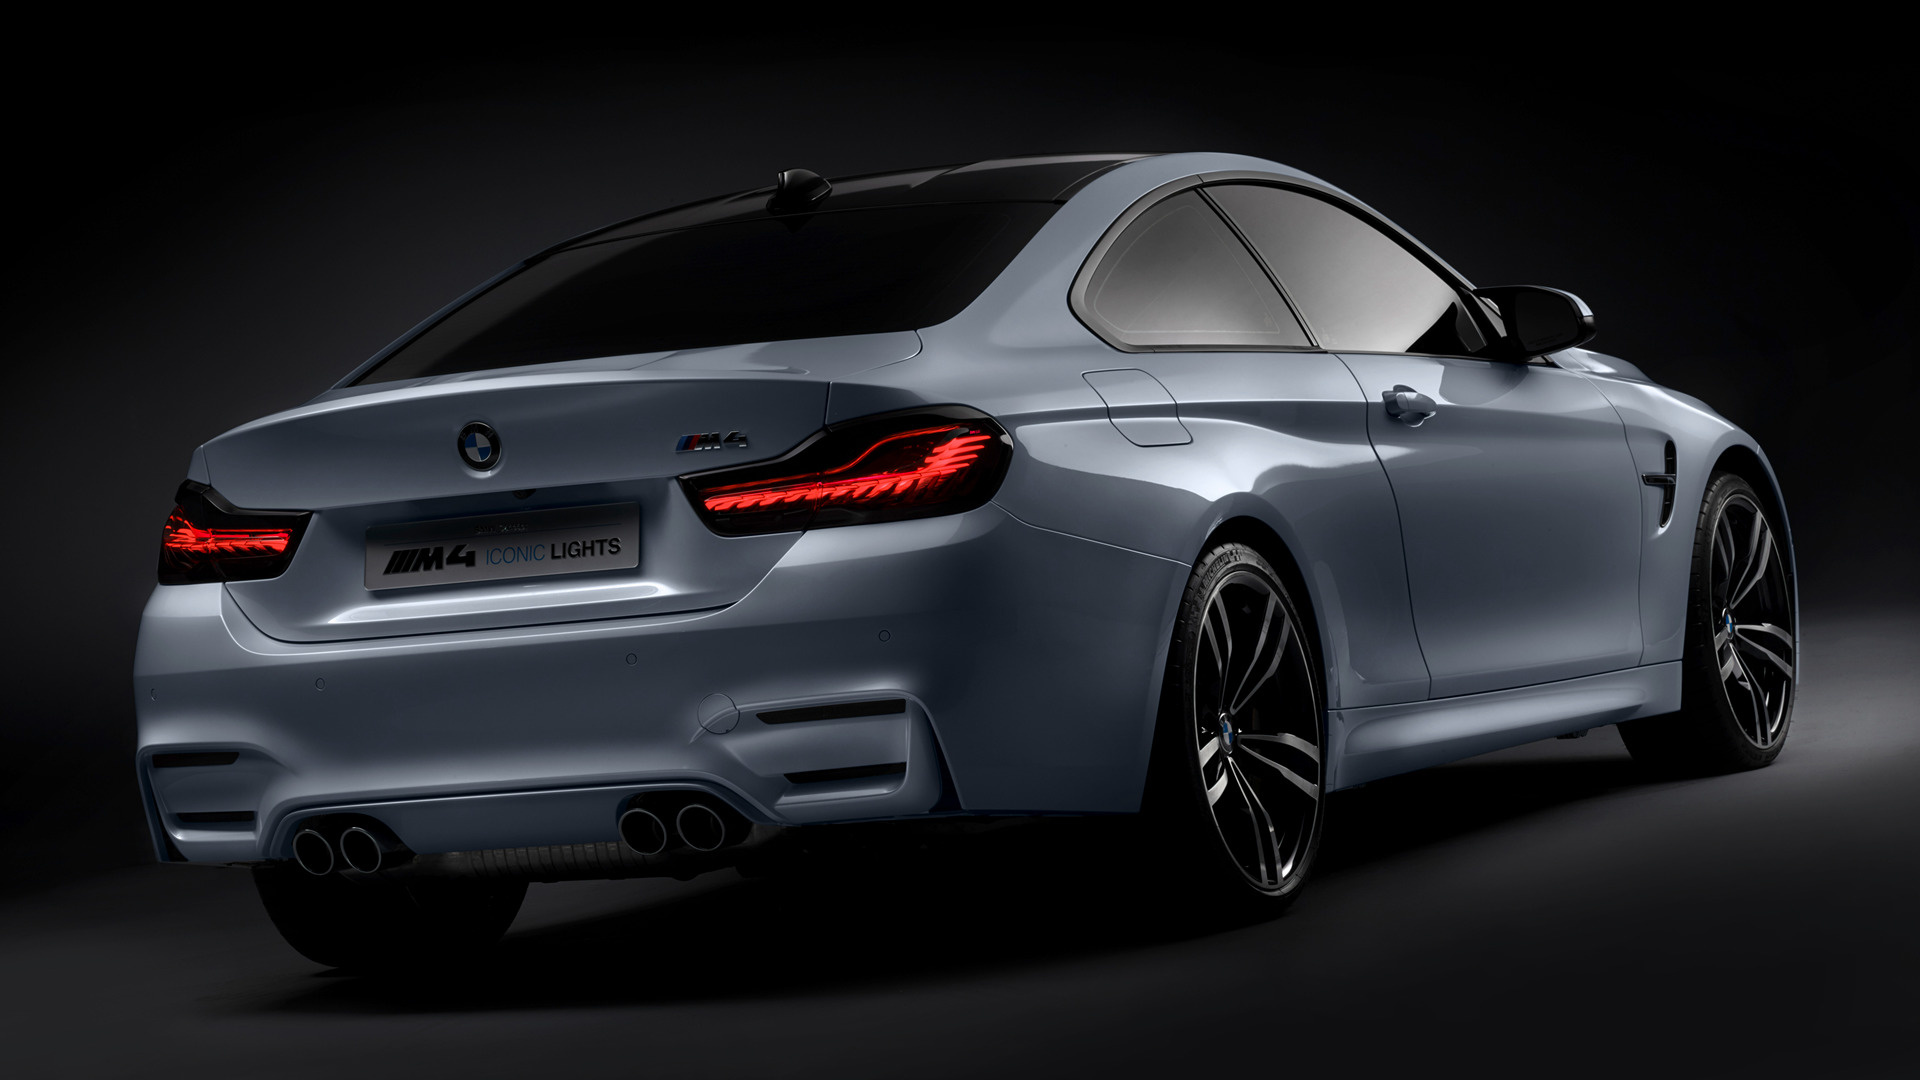 2015 BMW Concept M4 Iconic Lights - Wallpapers and HD ...